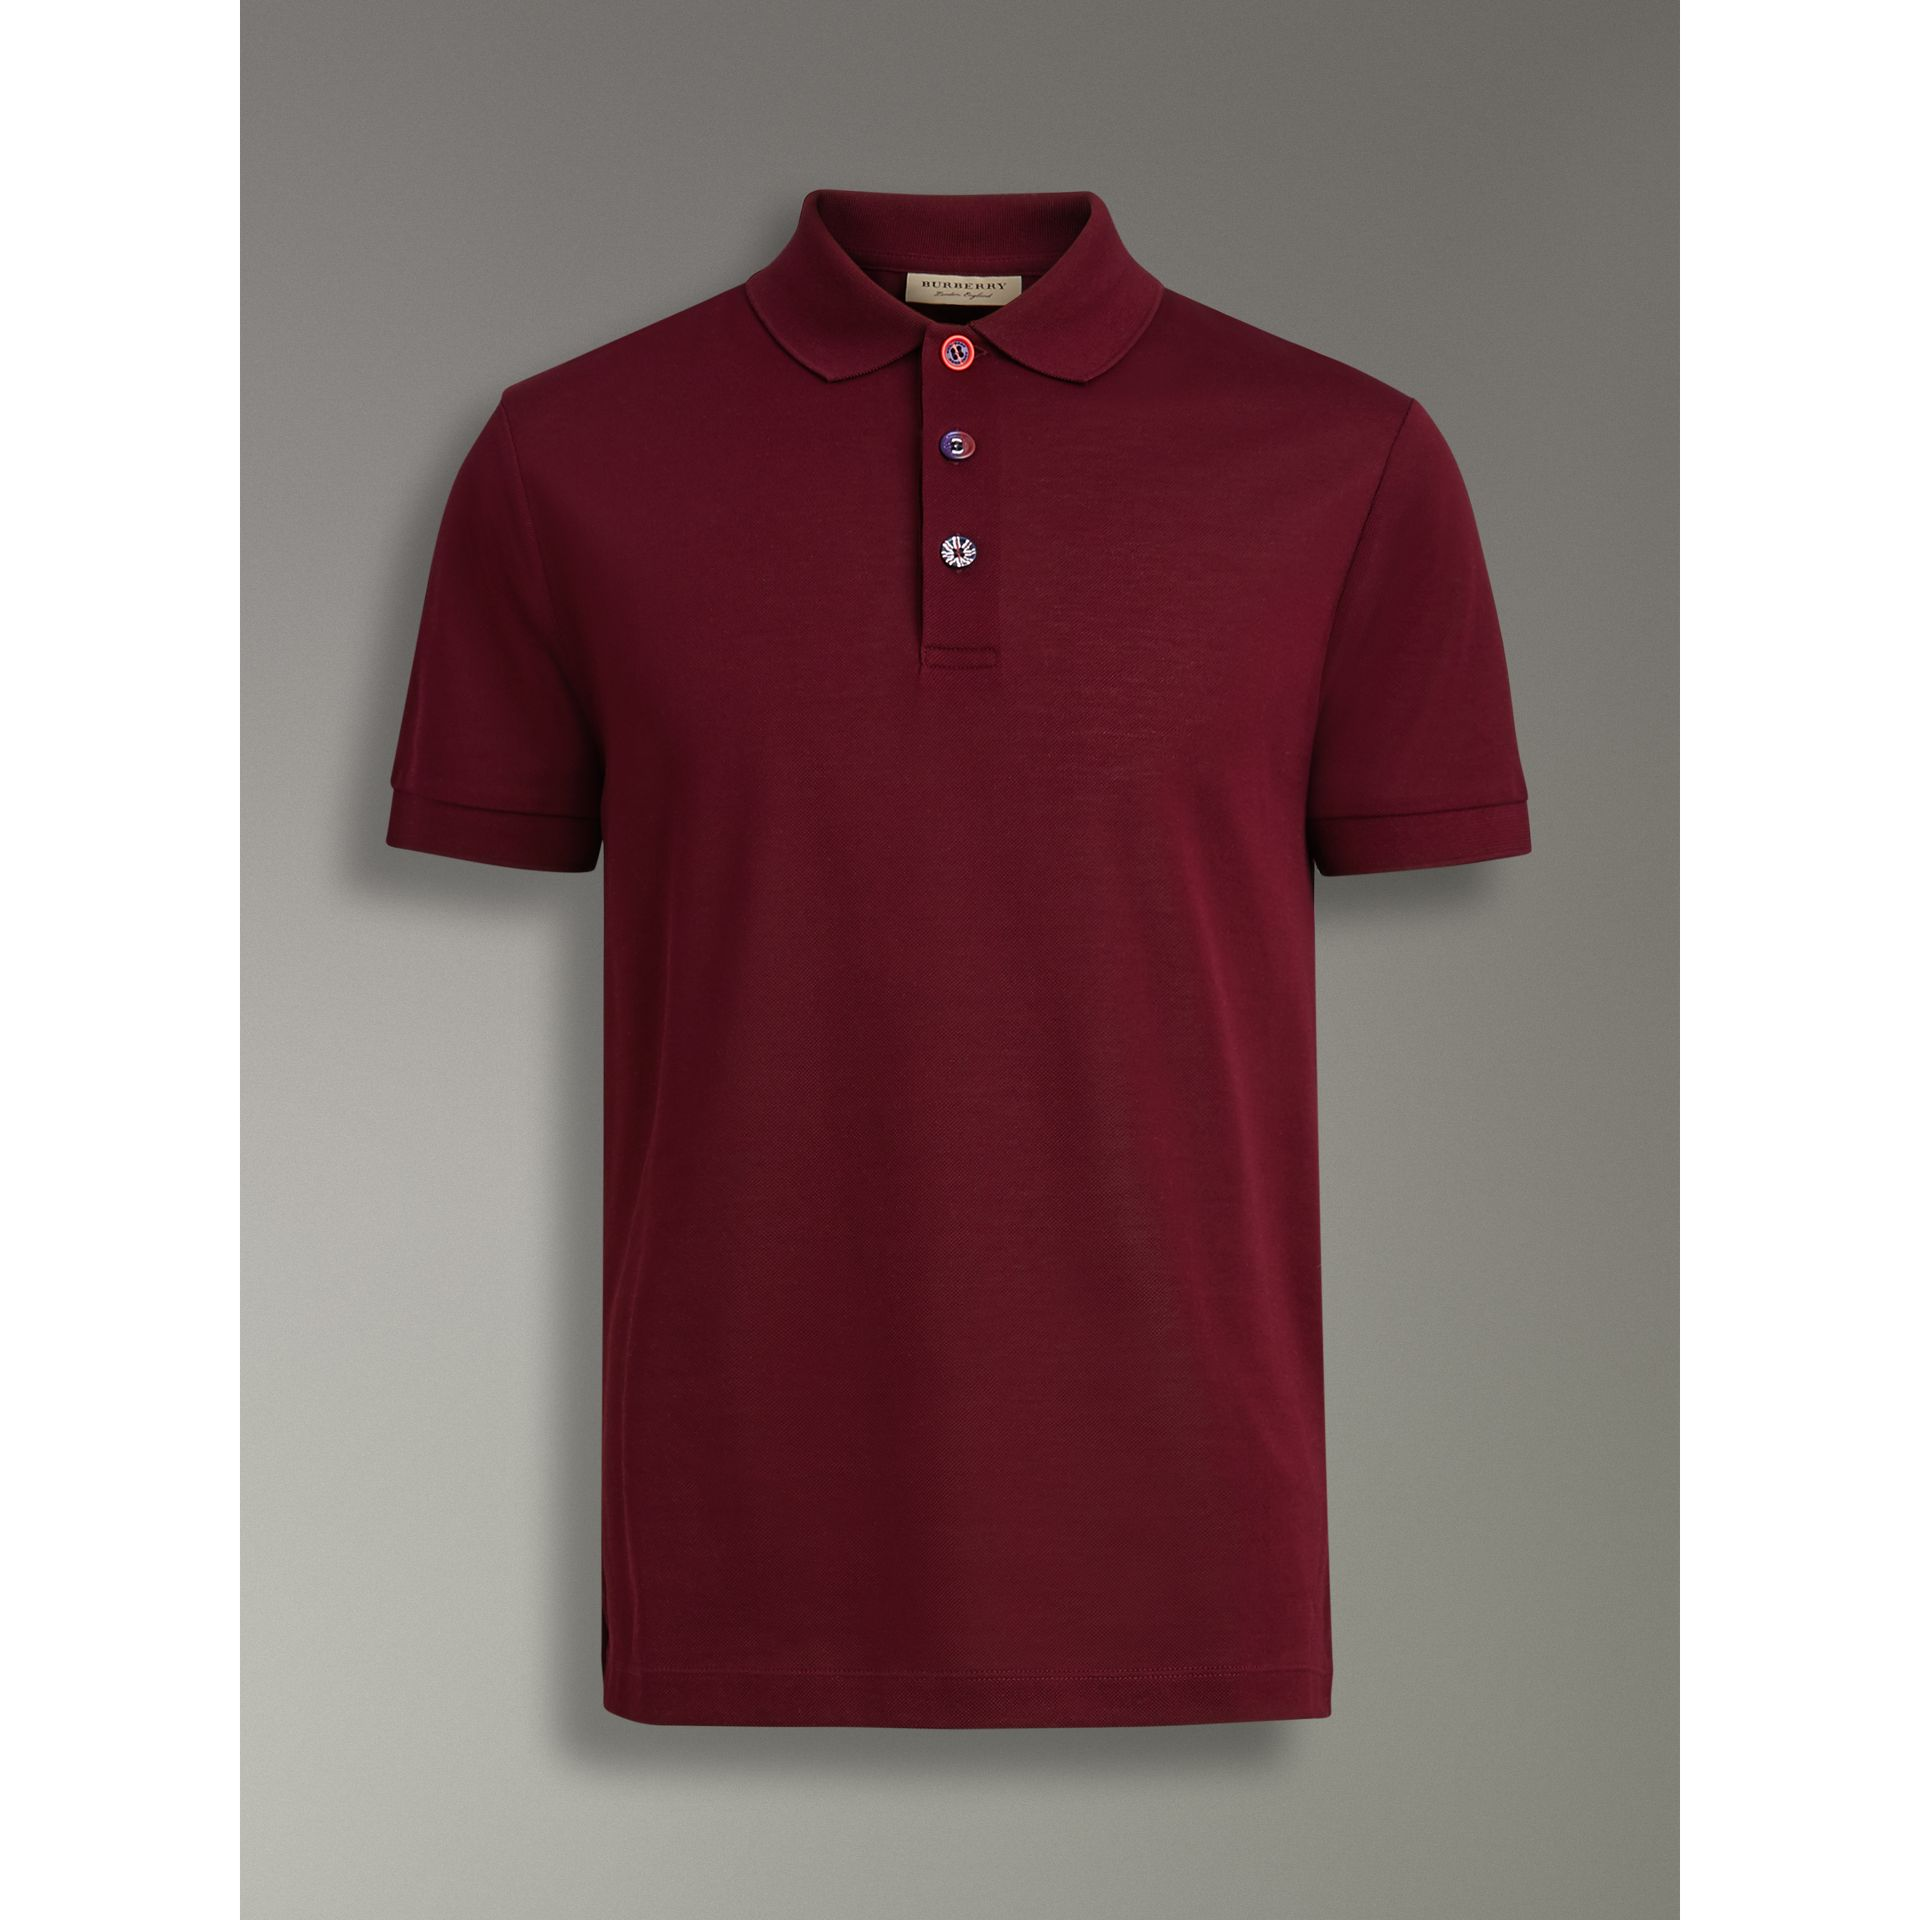 Painted Button Cotton Piqué Polo Shirt in Burgundy Red - Men | Burberry - gallery image 3